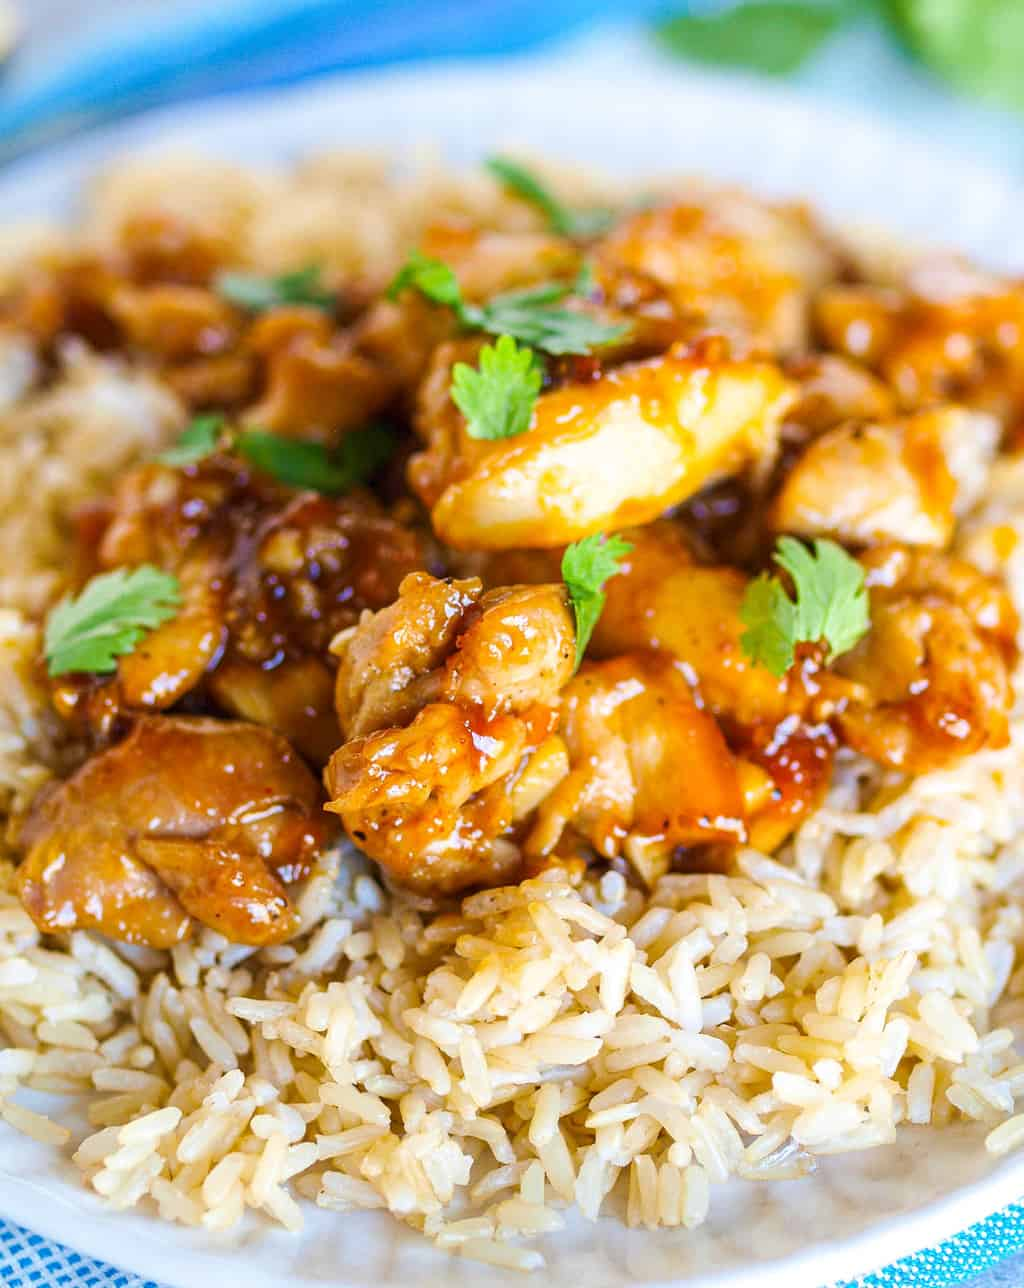 An up-close side shot of a plate of healthy orange chicken